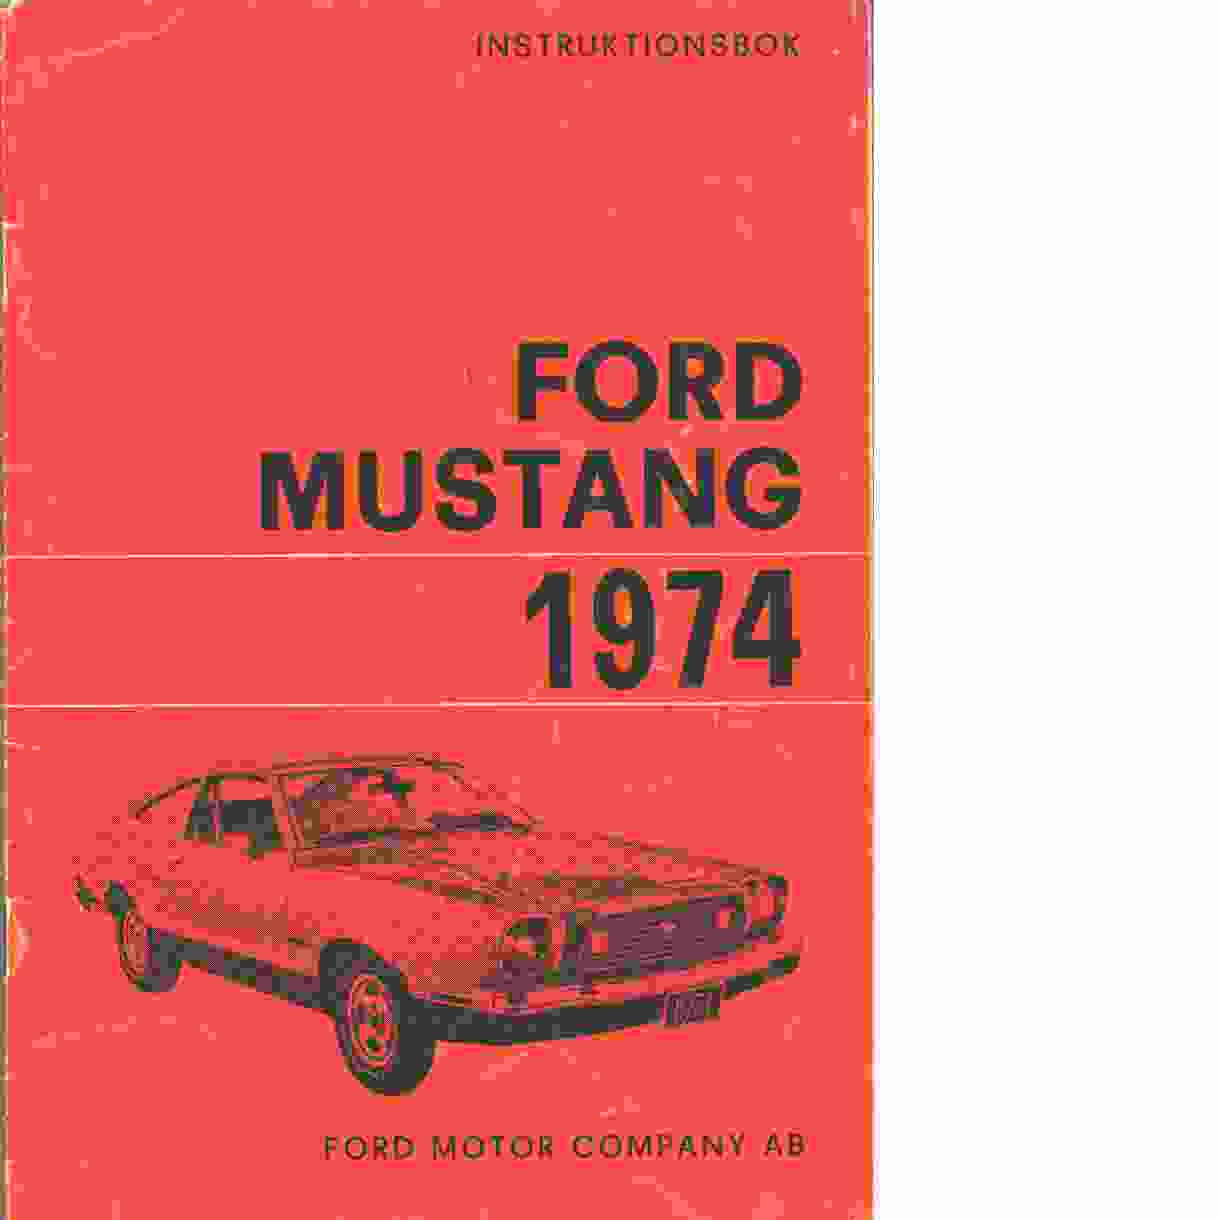 Ford Mustang 1974 - Red.